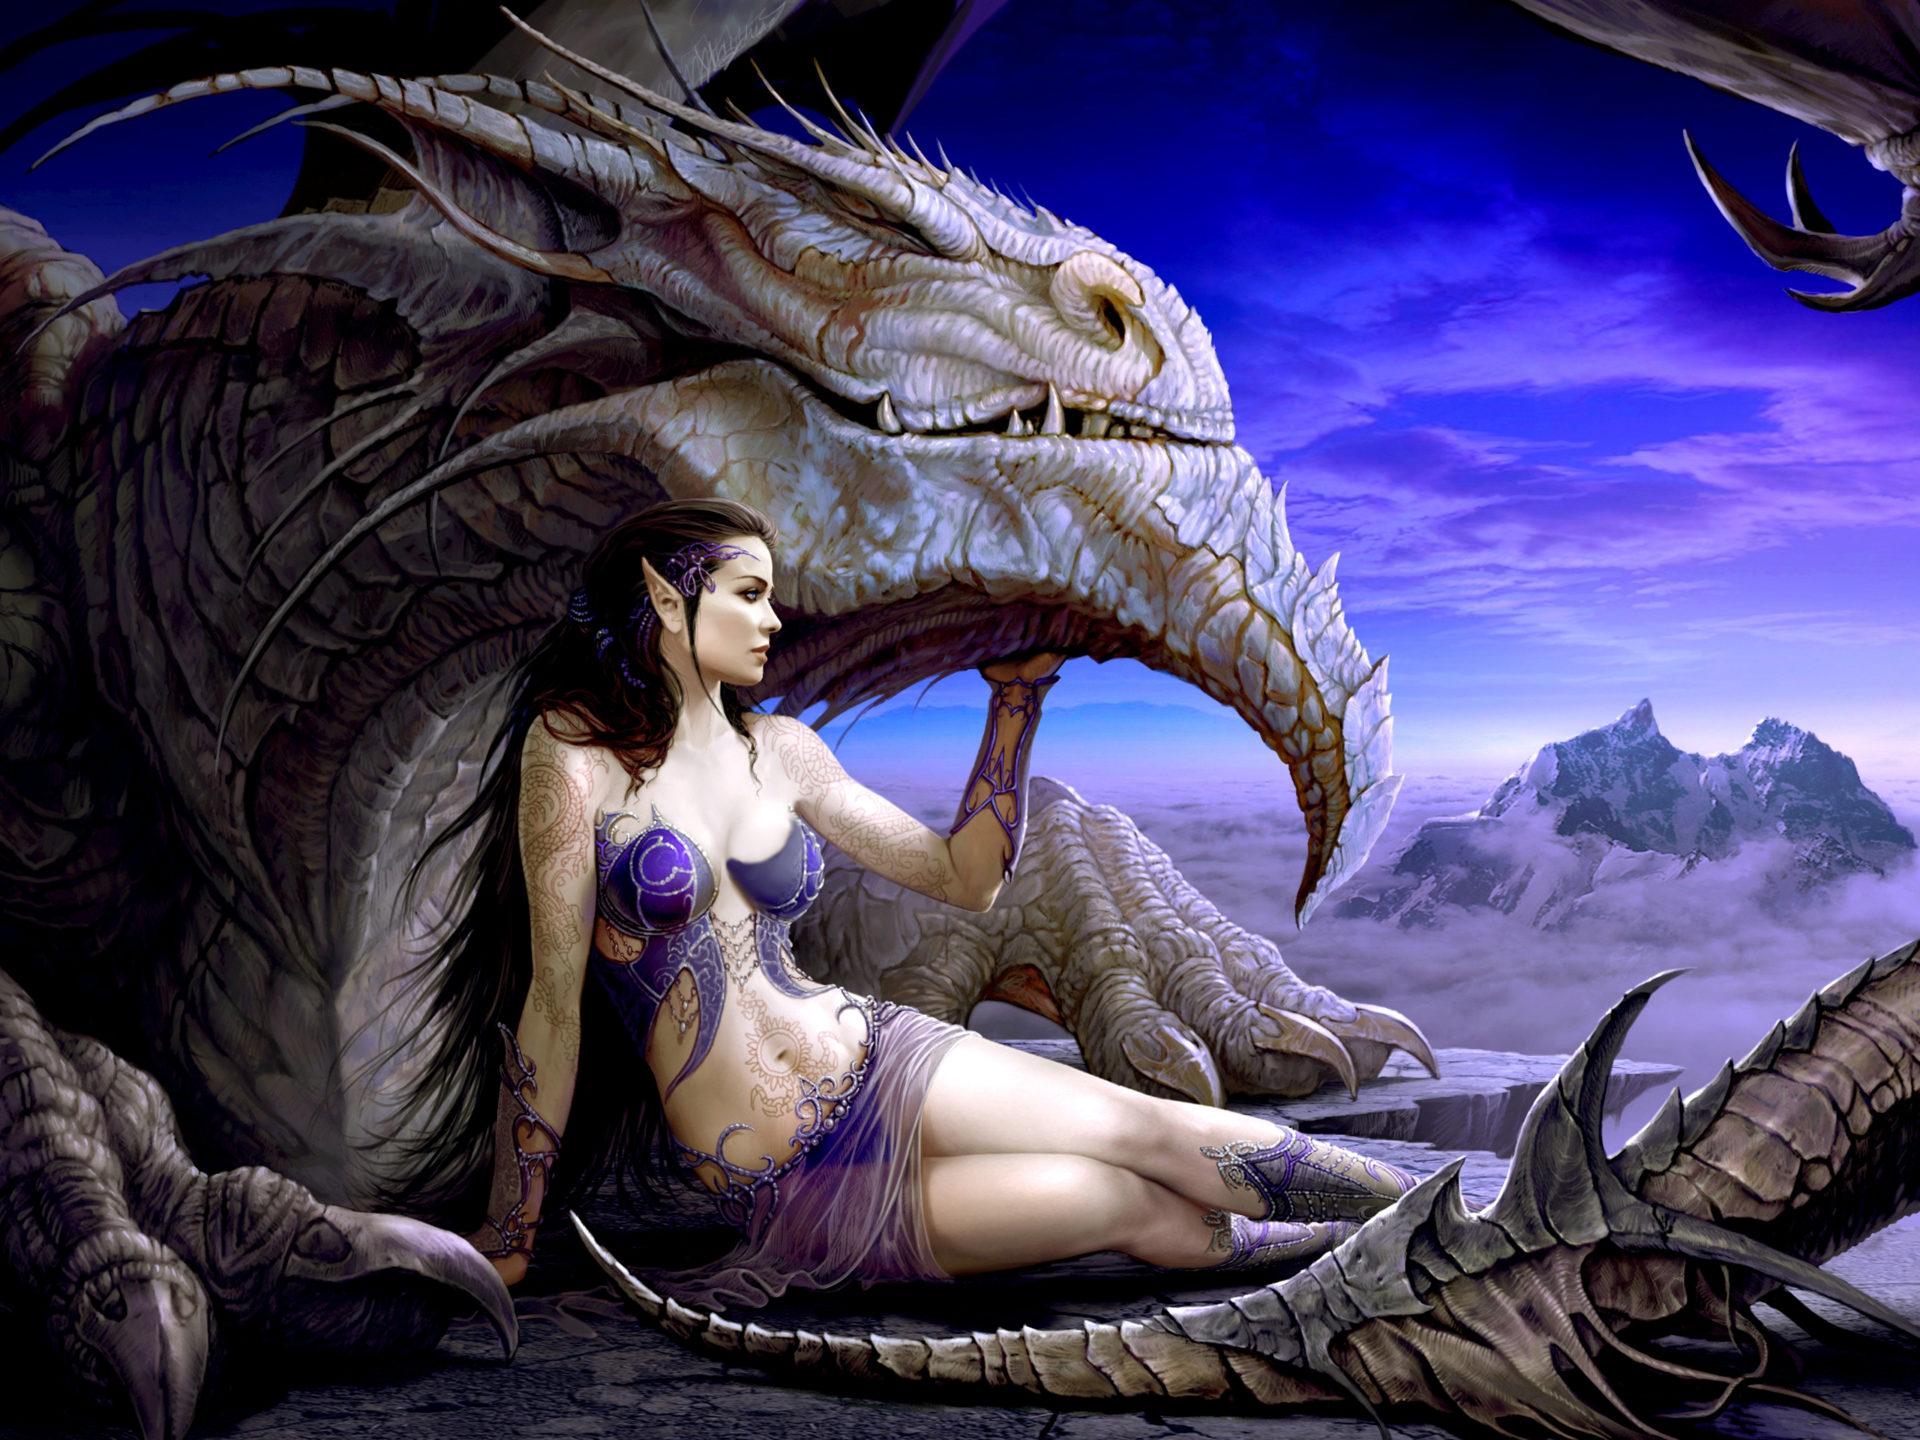 Animated Princess Wallpapers Dragon Queen Desktop Background Wallpaper 1639240